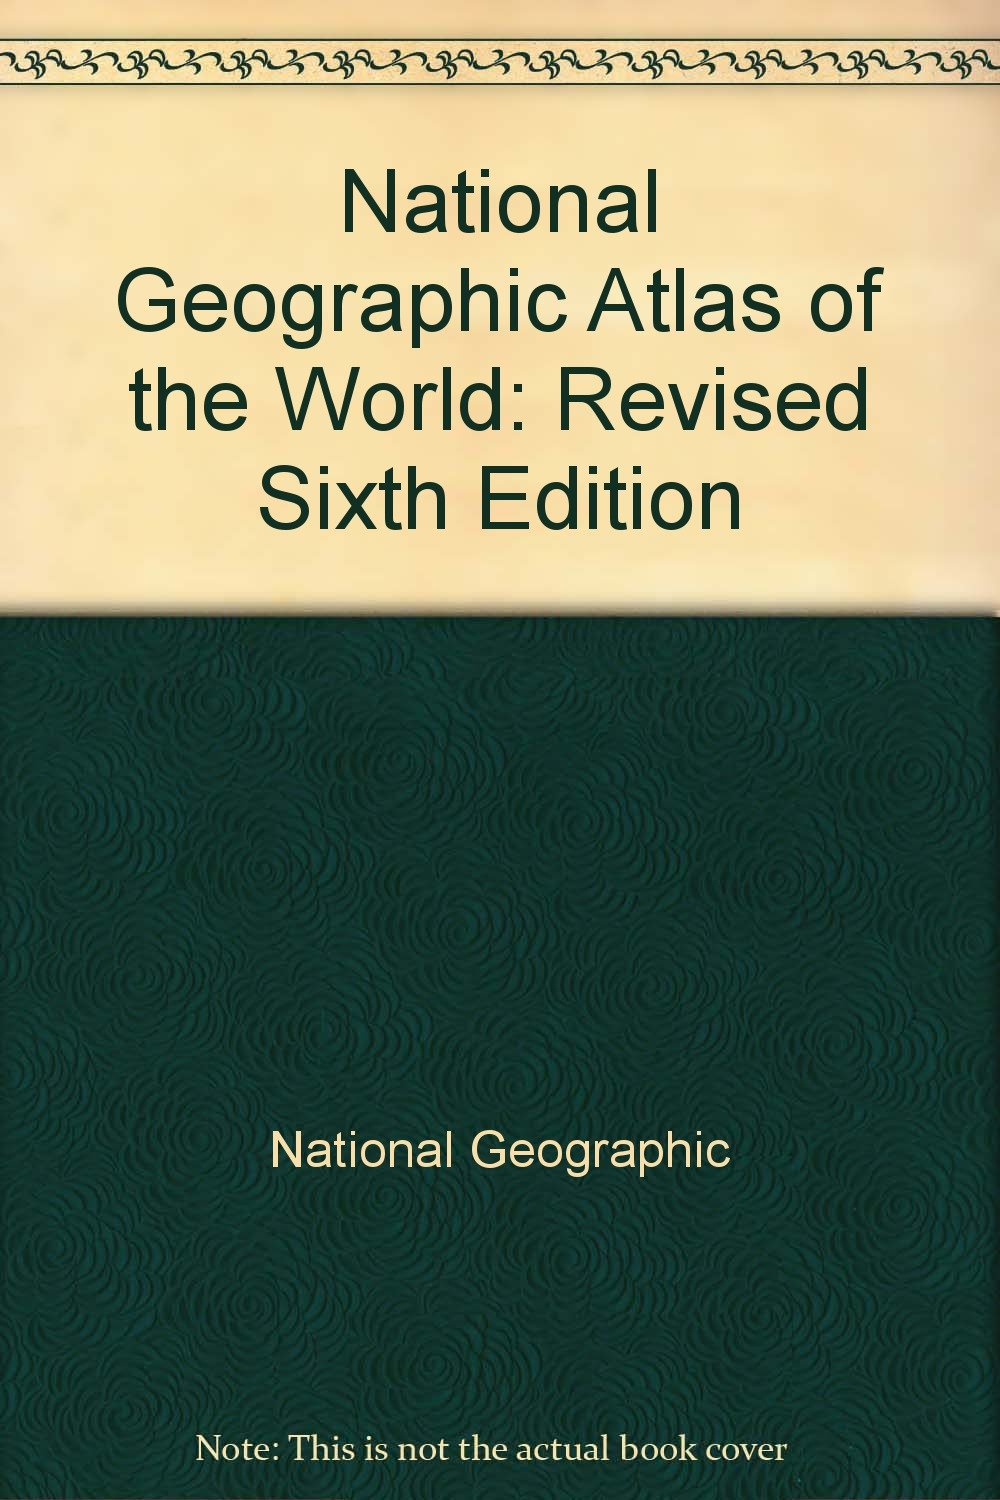 National Geographic Atlas of the World: Sixth Edition: National Geographic:  Amazon.com: Books